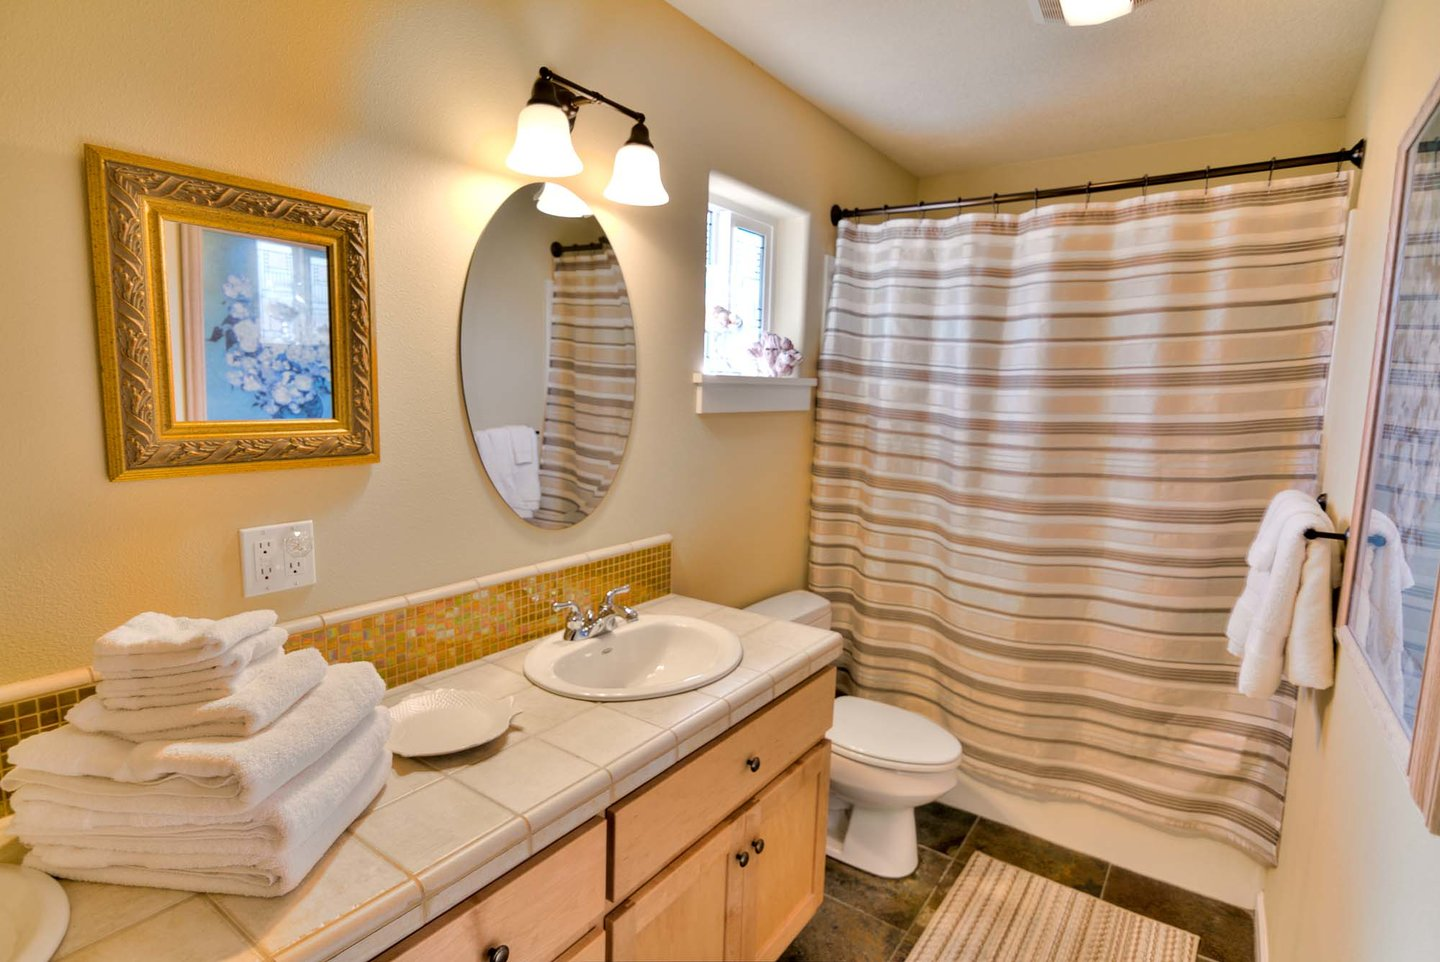 The downstairs bath has plenty of space to share.